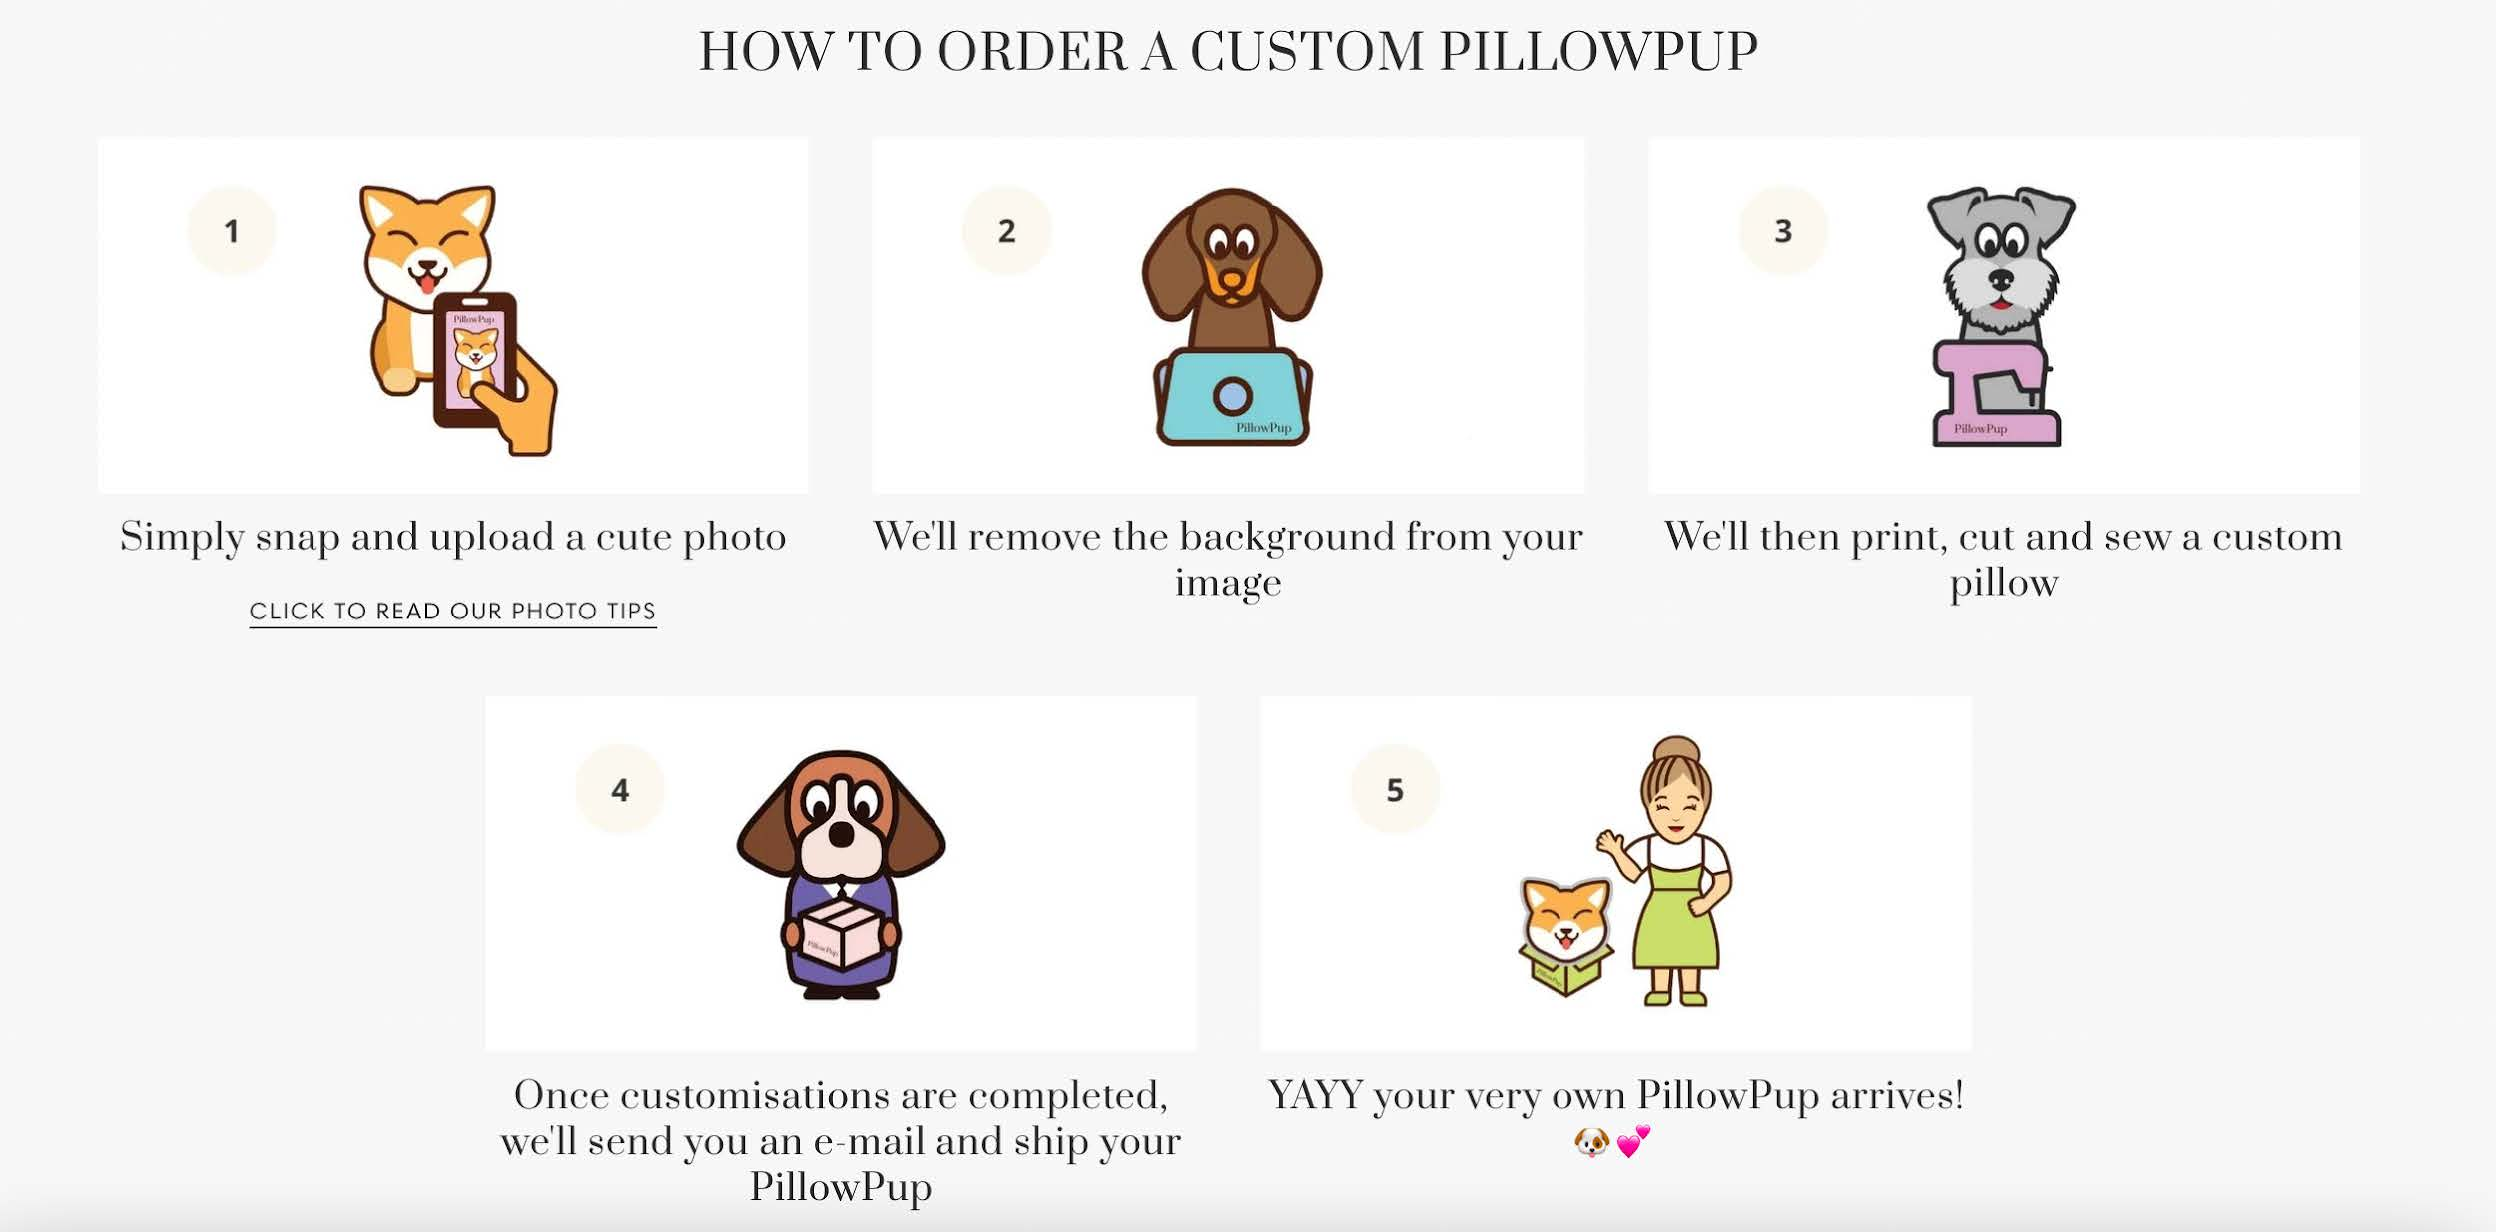 how to order custom pillowpup page